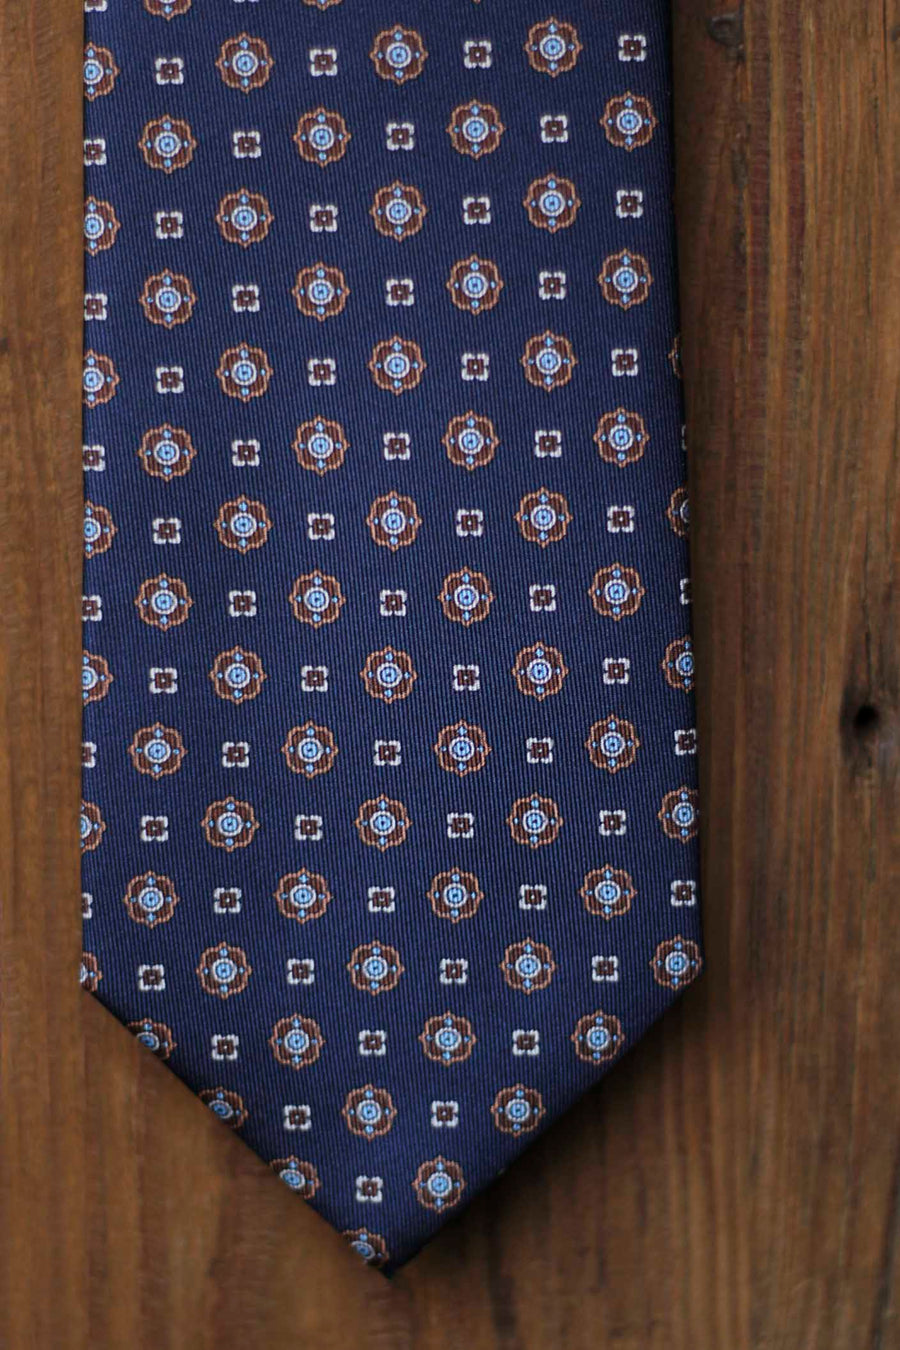 Napoli Silk Tie Navy Blue Geometry Blue, White and Brown